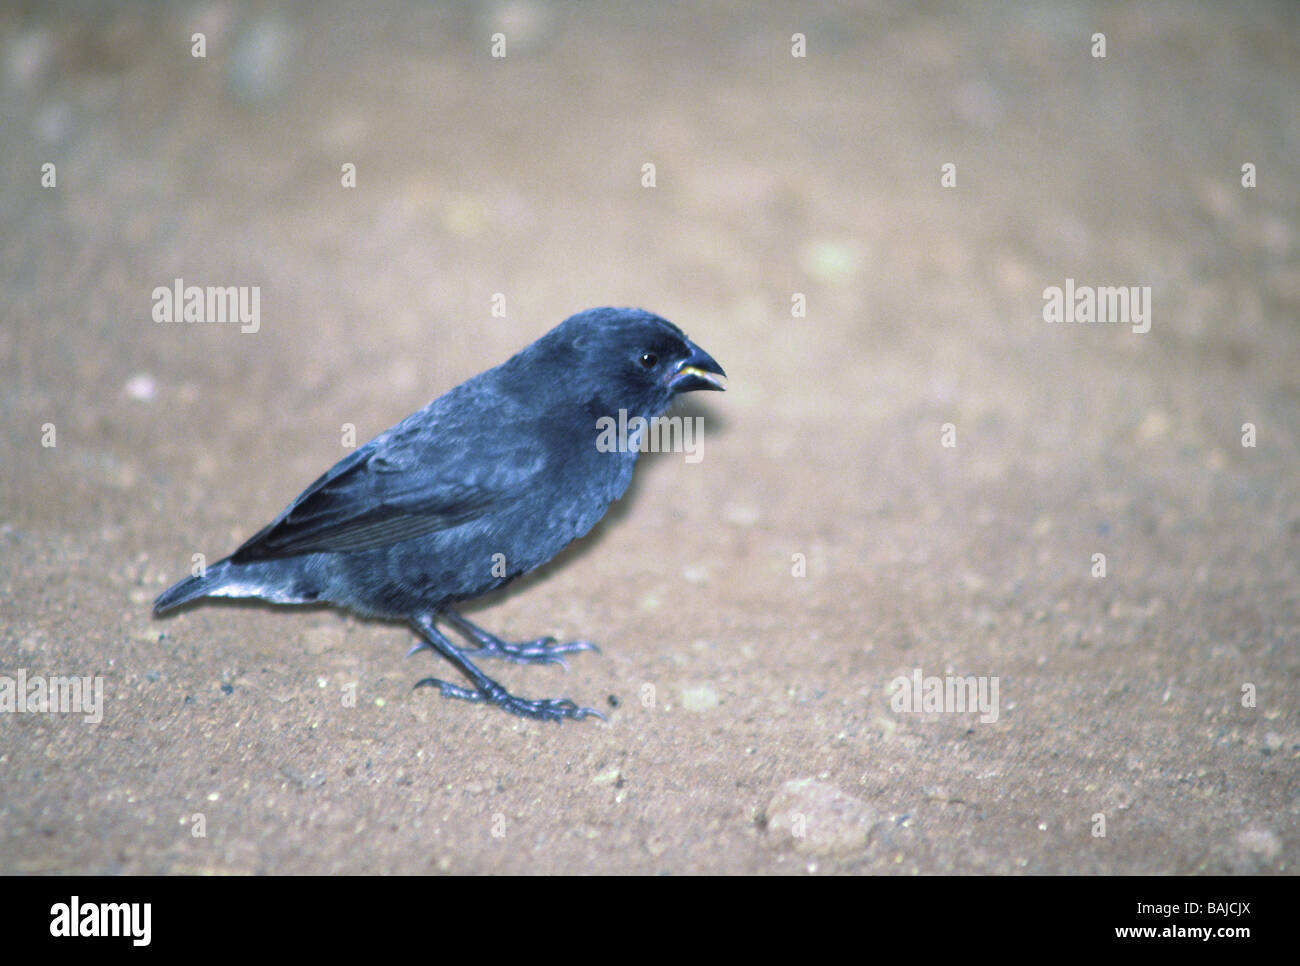 Galapagos Islands;Medium Ground Finch 'Geospiza fortis' Male on Santa Cruz island. - Stock Image